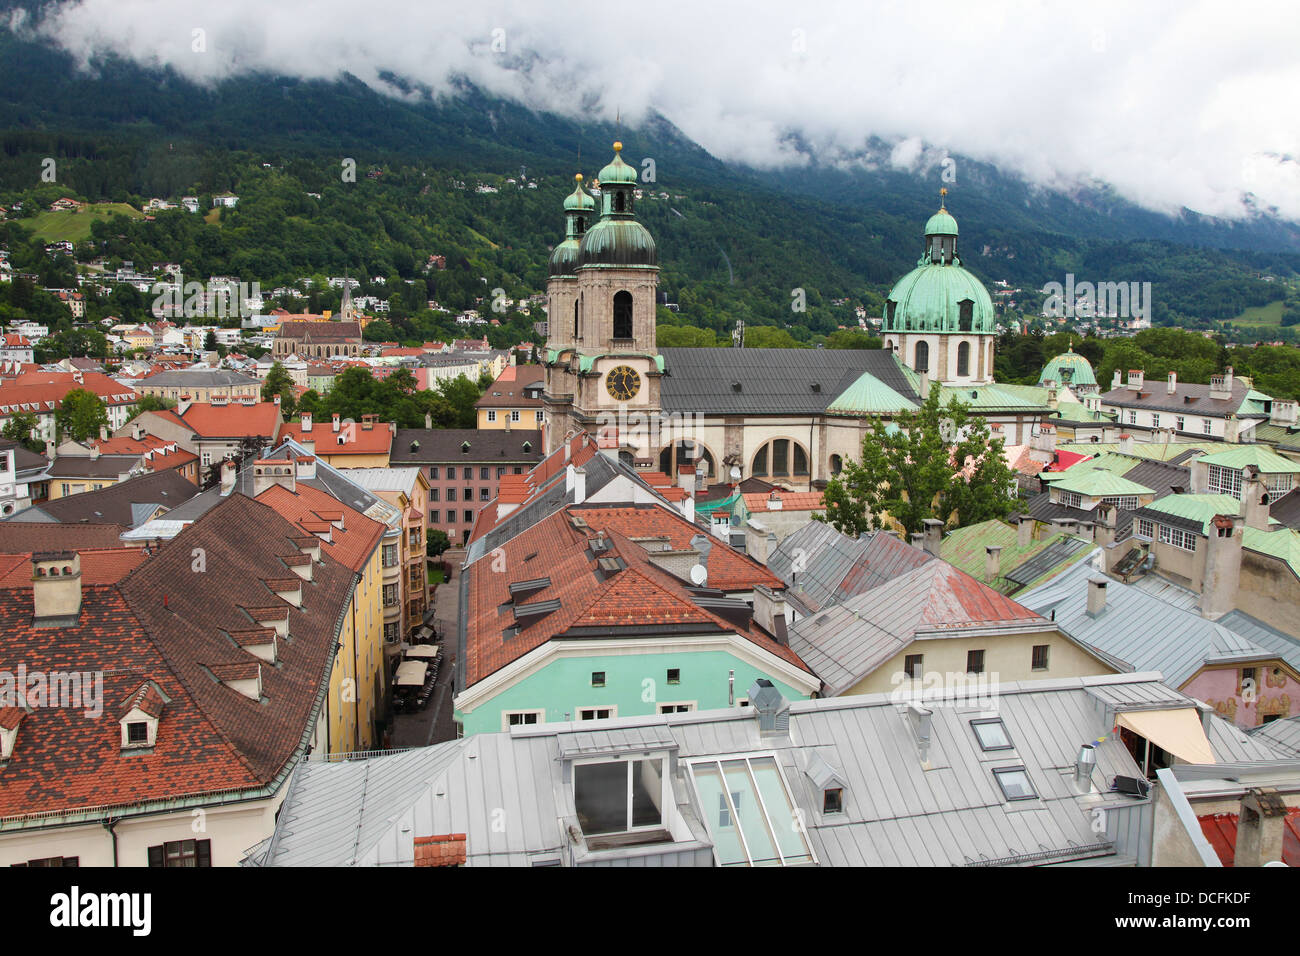 Panoramic view on the Dom in the old center of Innsbruck, Austria. - Stock Image